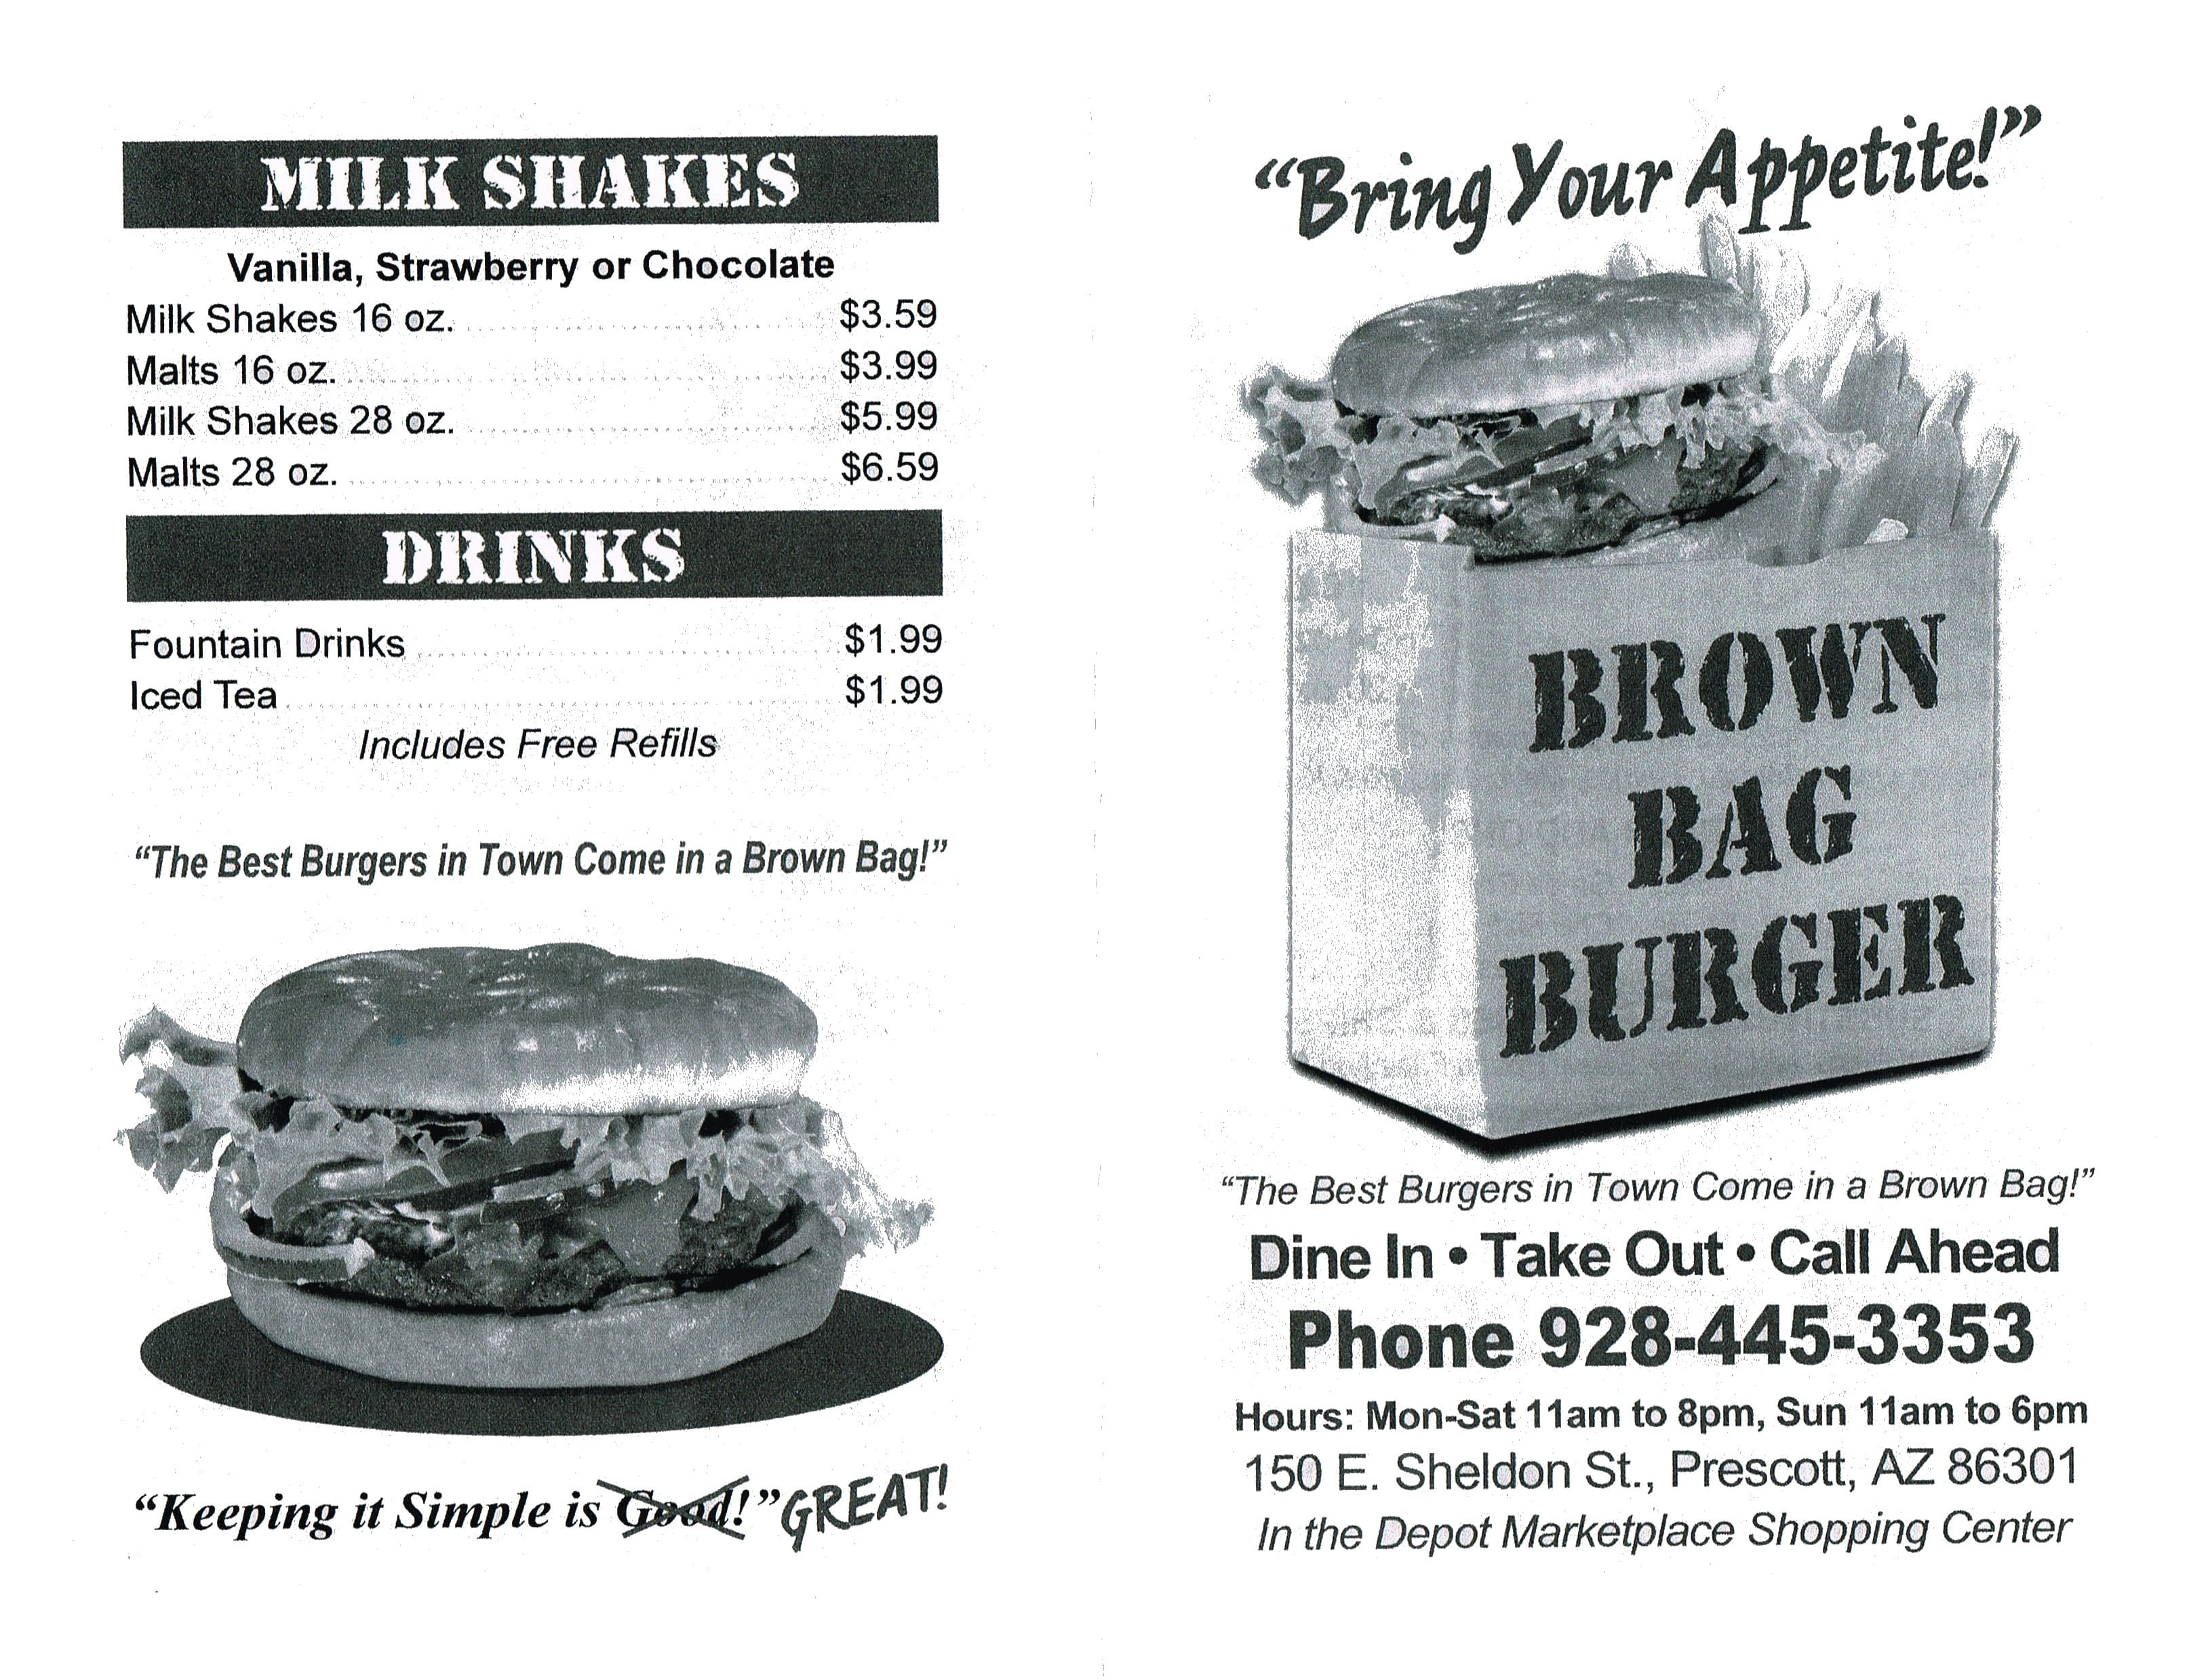 Brown Bag Burger Menu